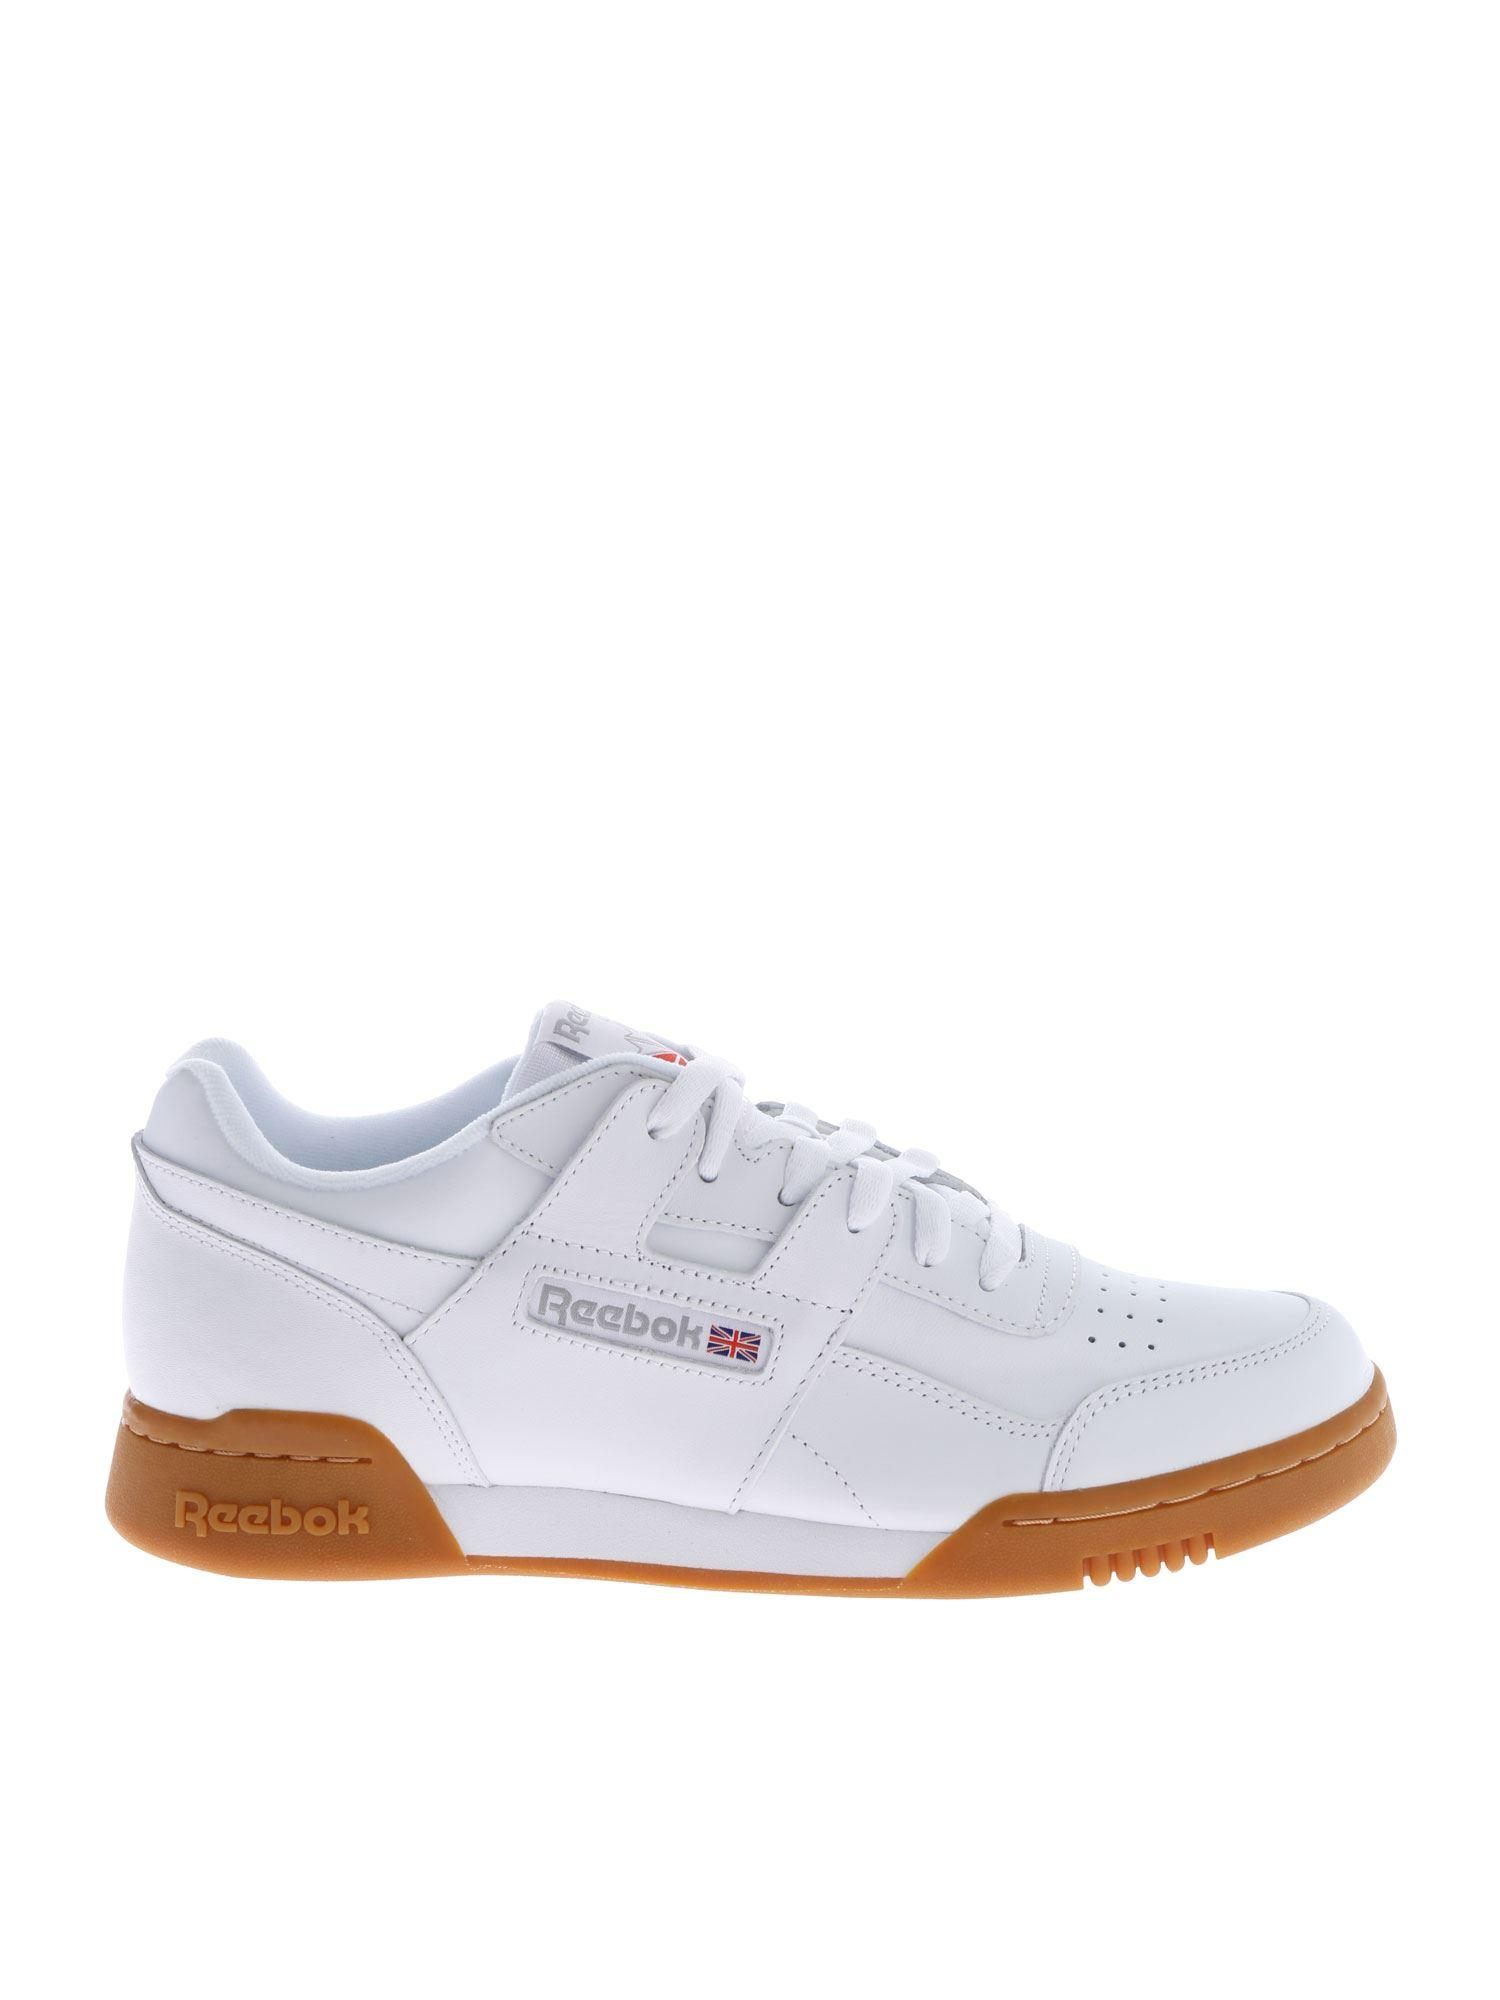 c2a91a4851a1f Reebok - Workout Plus White Sneakers for Men - Lyst. View fullscreen